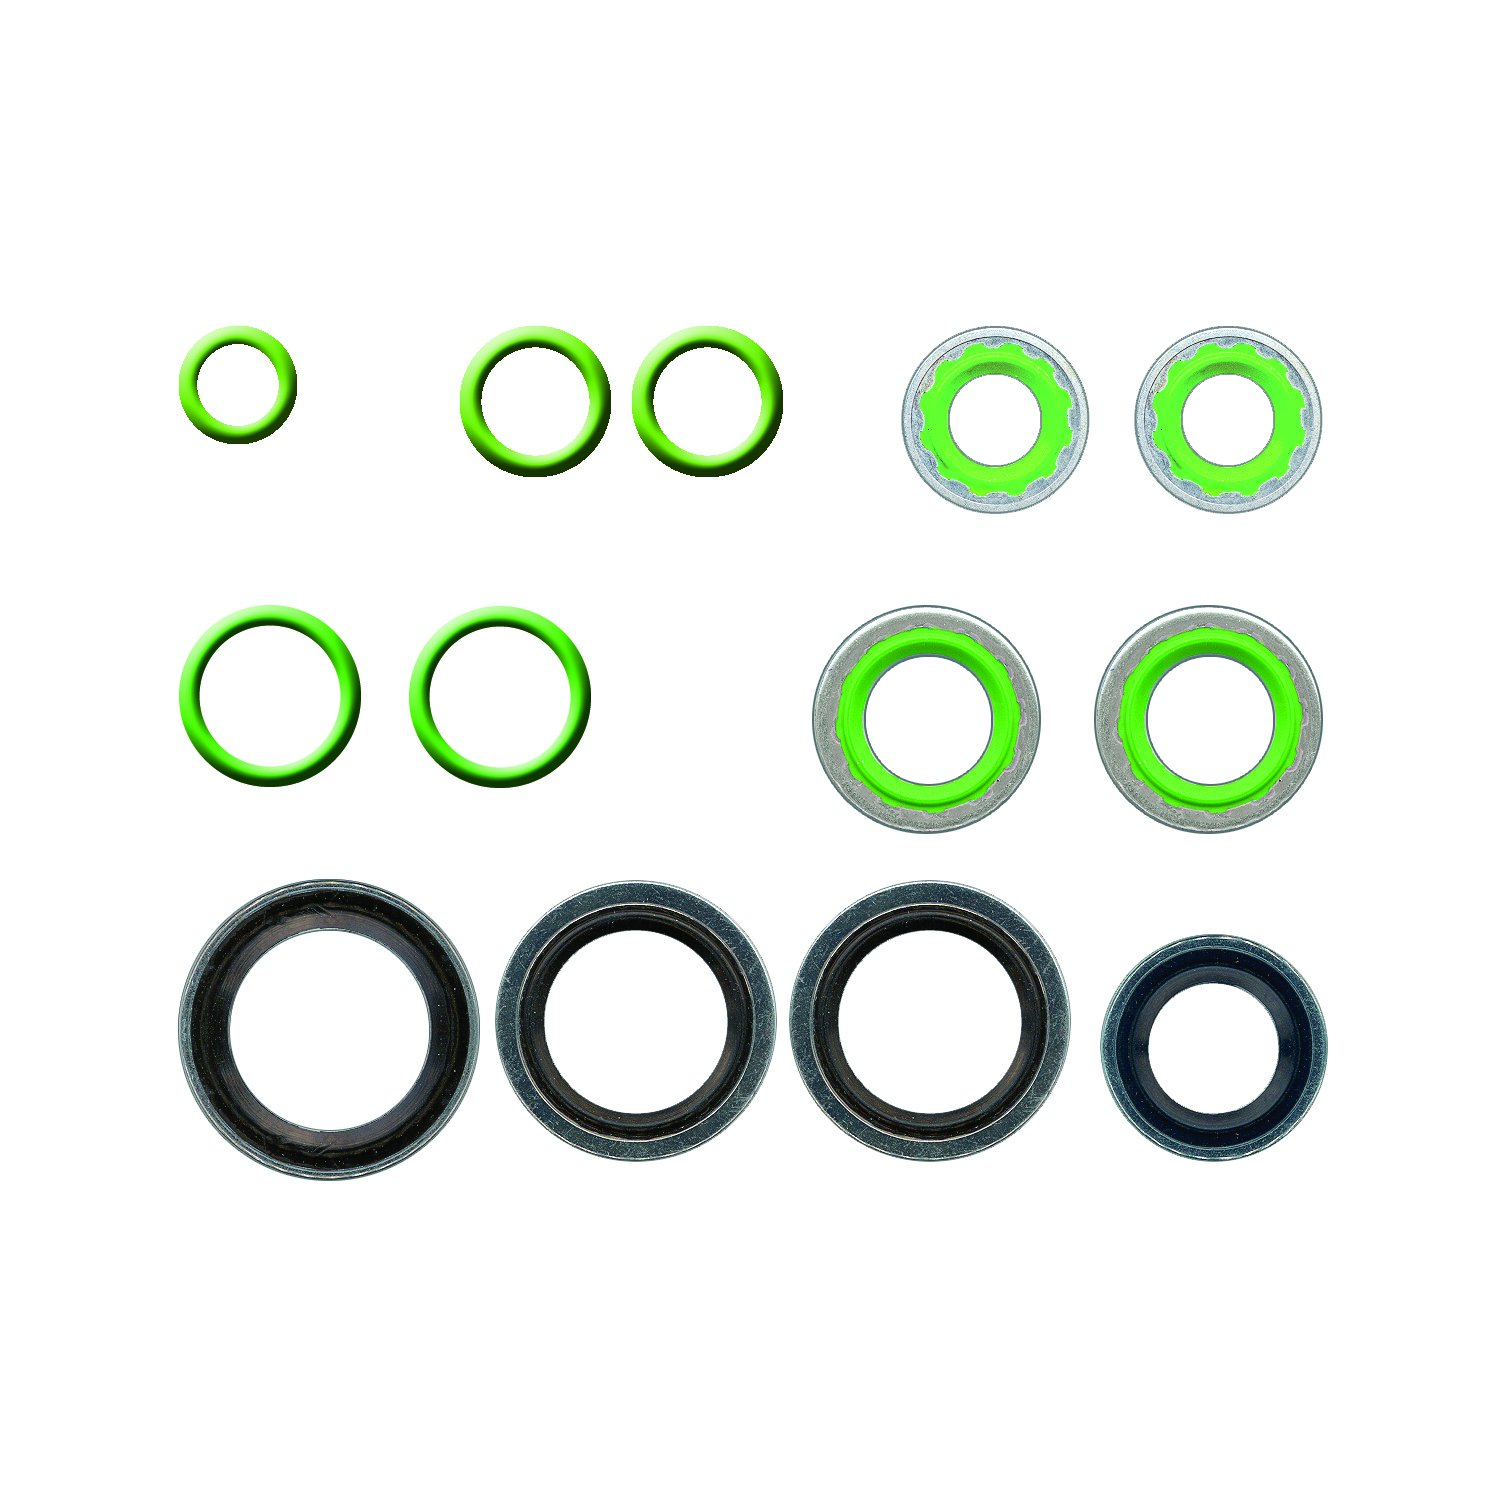 FTT010714 A//C System Seal Kit compatible with 2005-2013 Toyota Tacoma